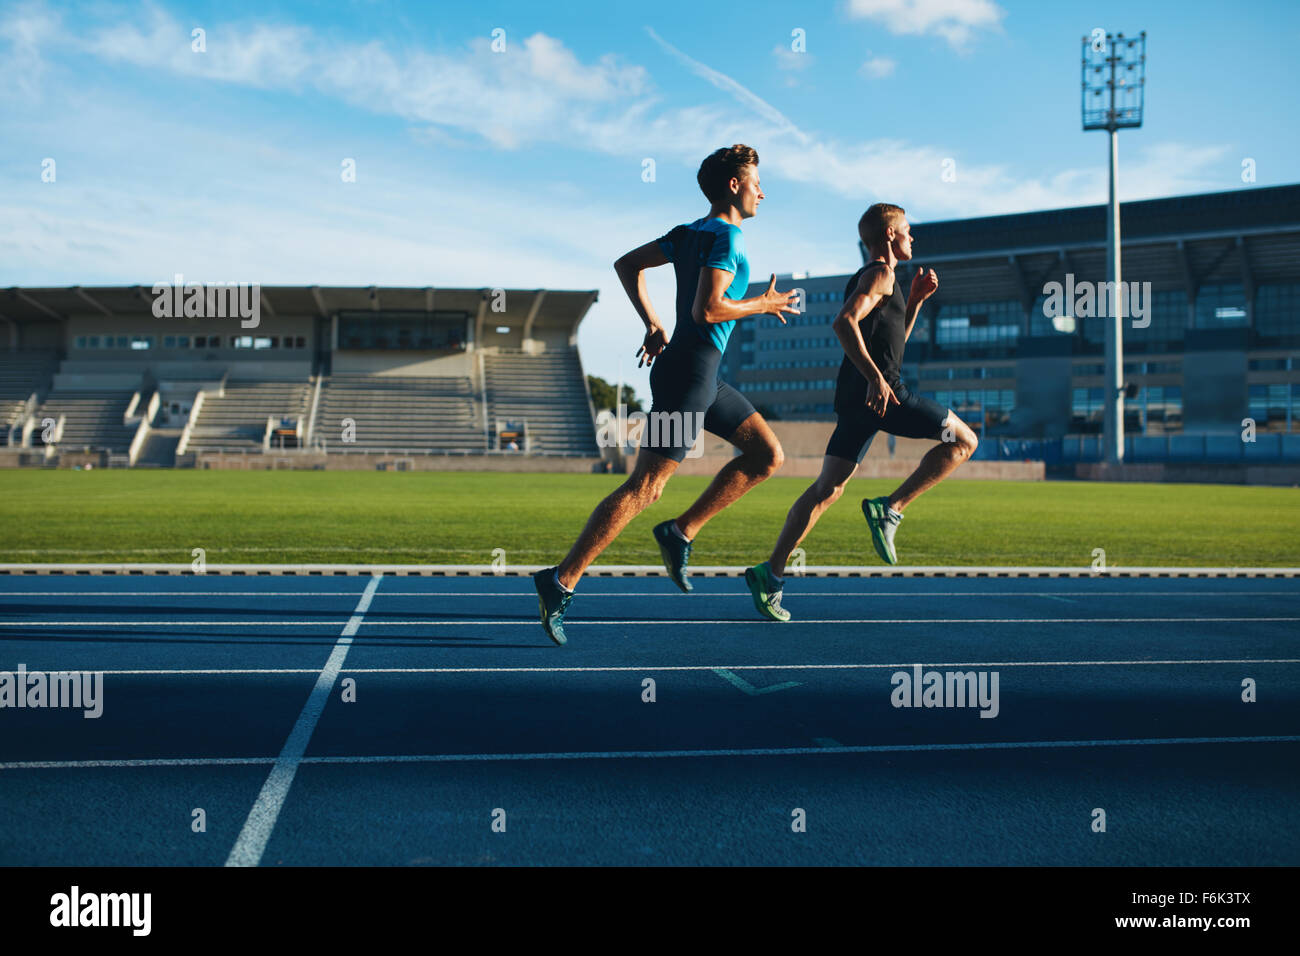 Two young men running on race track. Male professional athletes running on athletics race track. - Stock Image